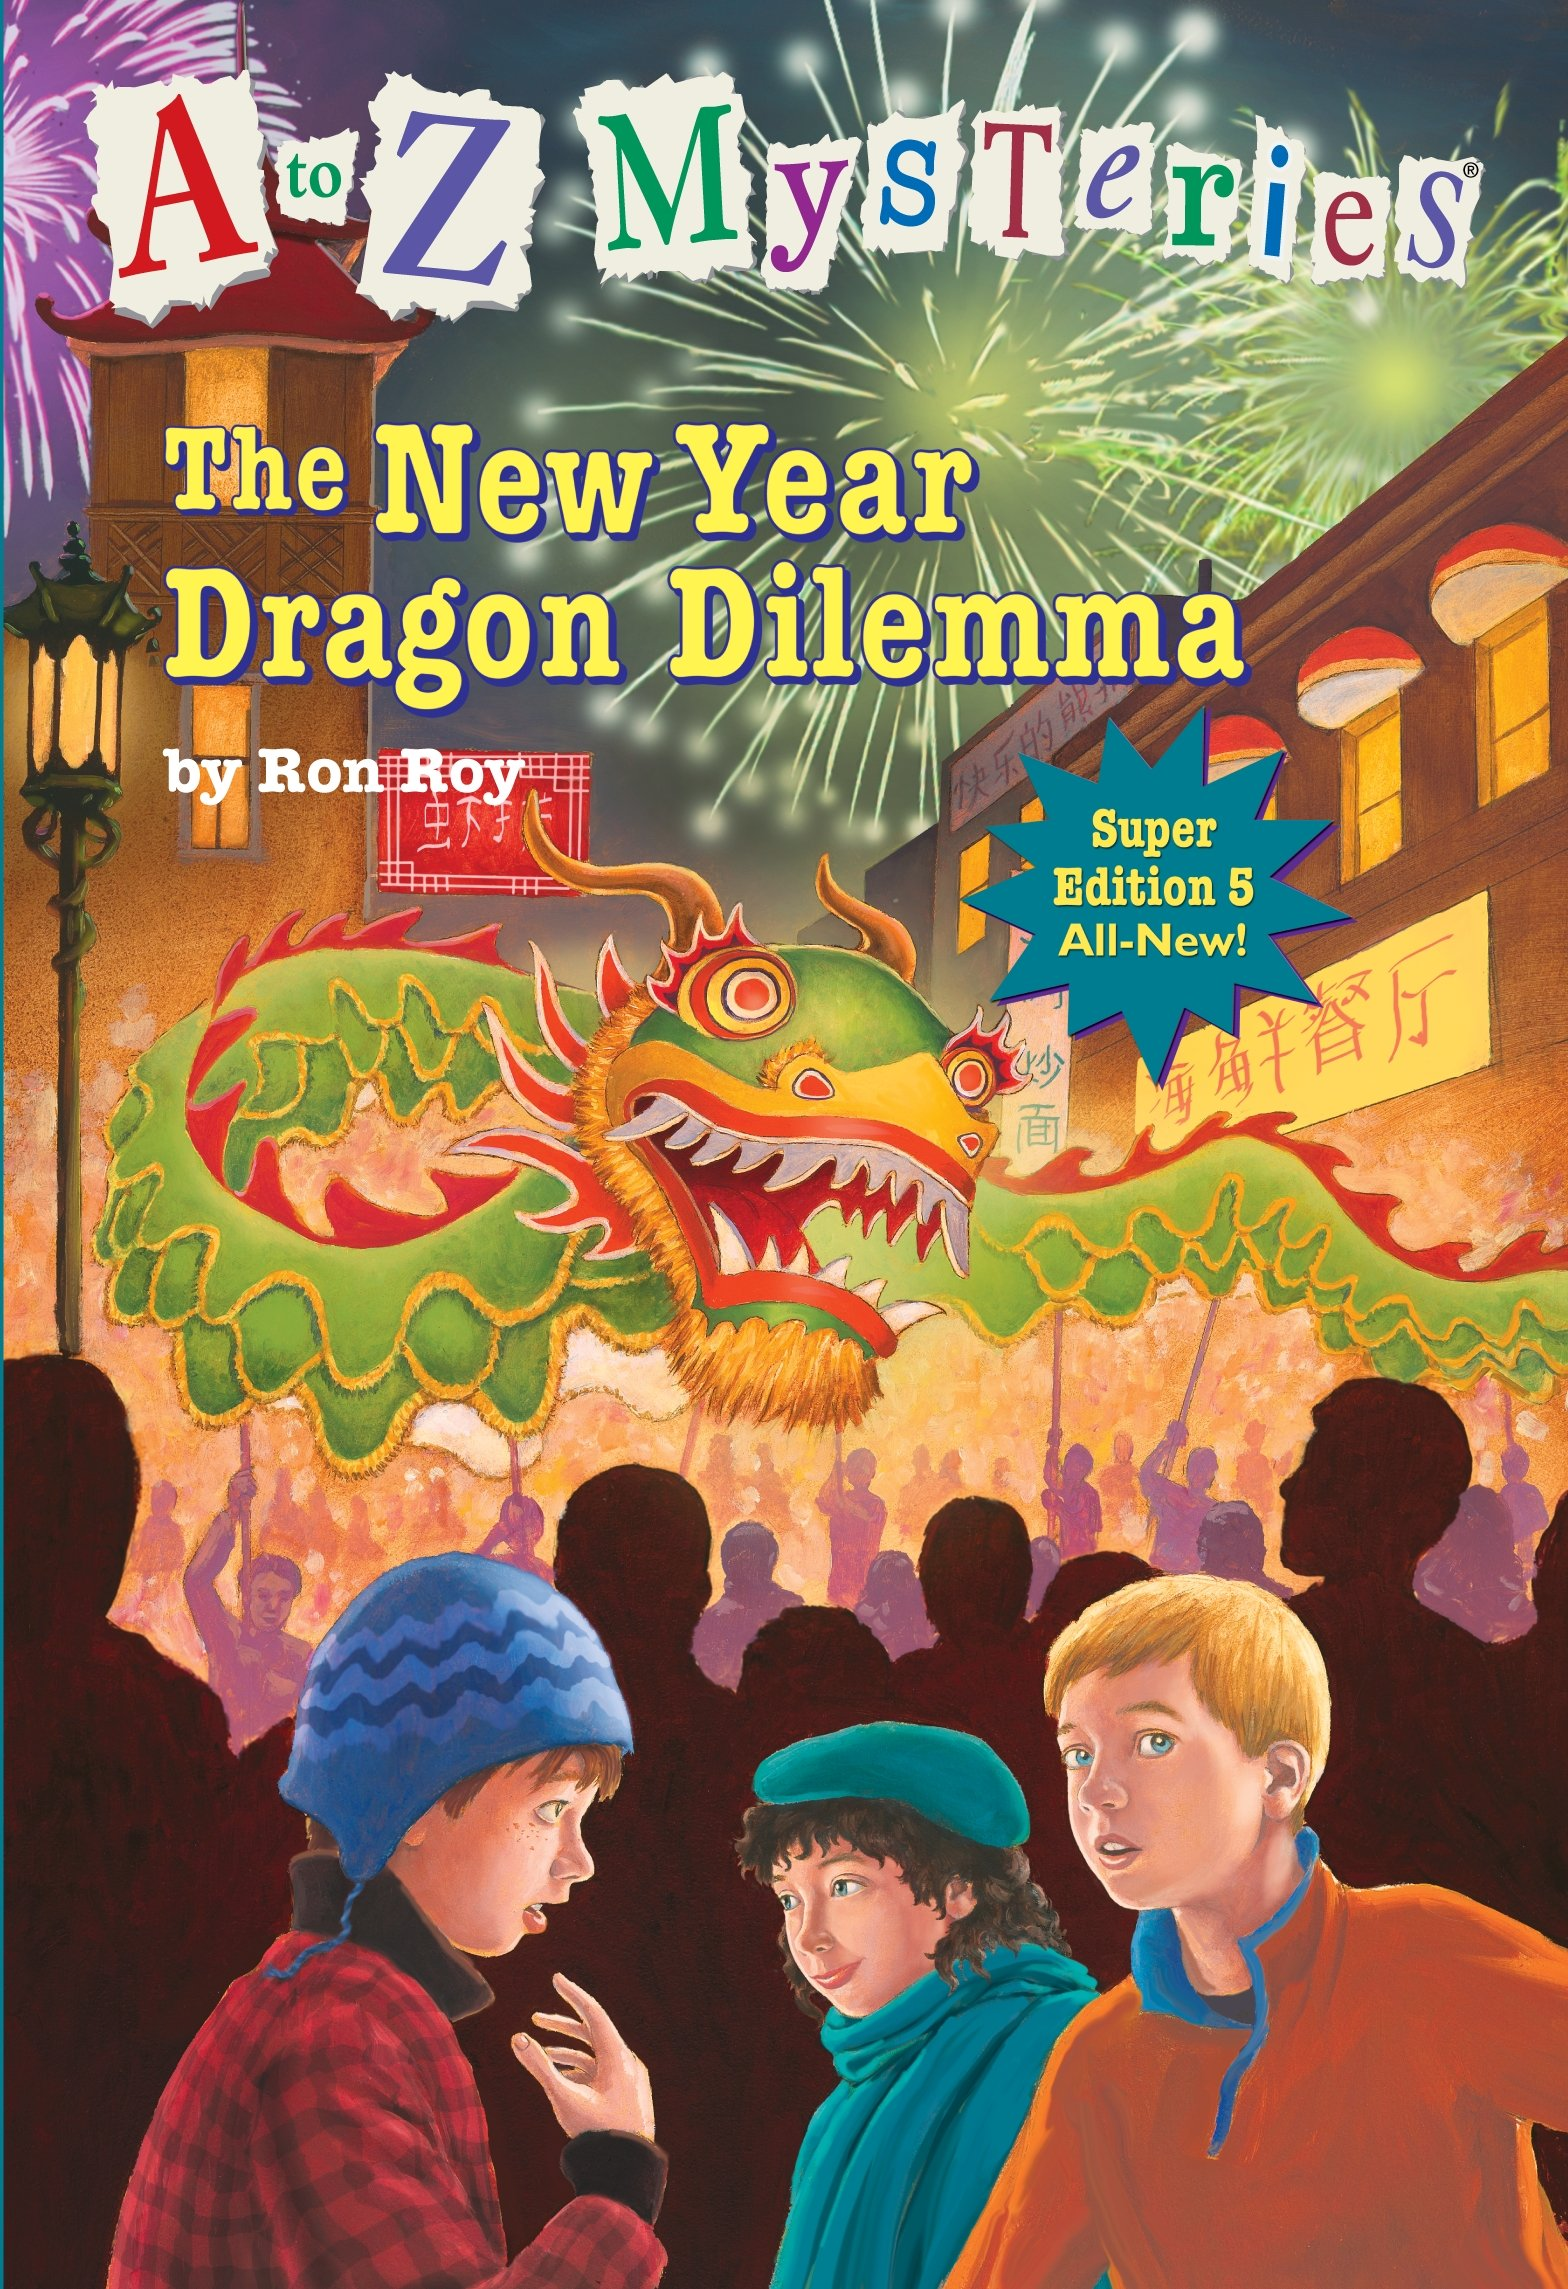 New Year Dragon Dilemma